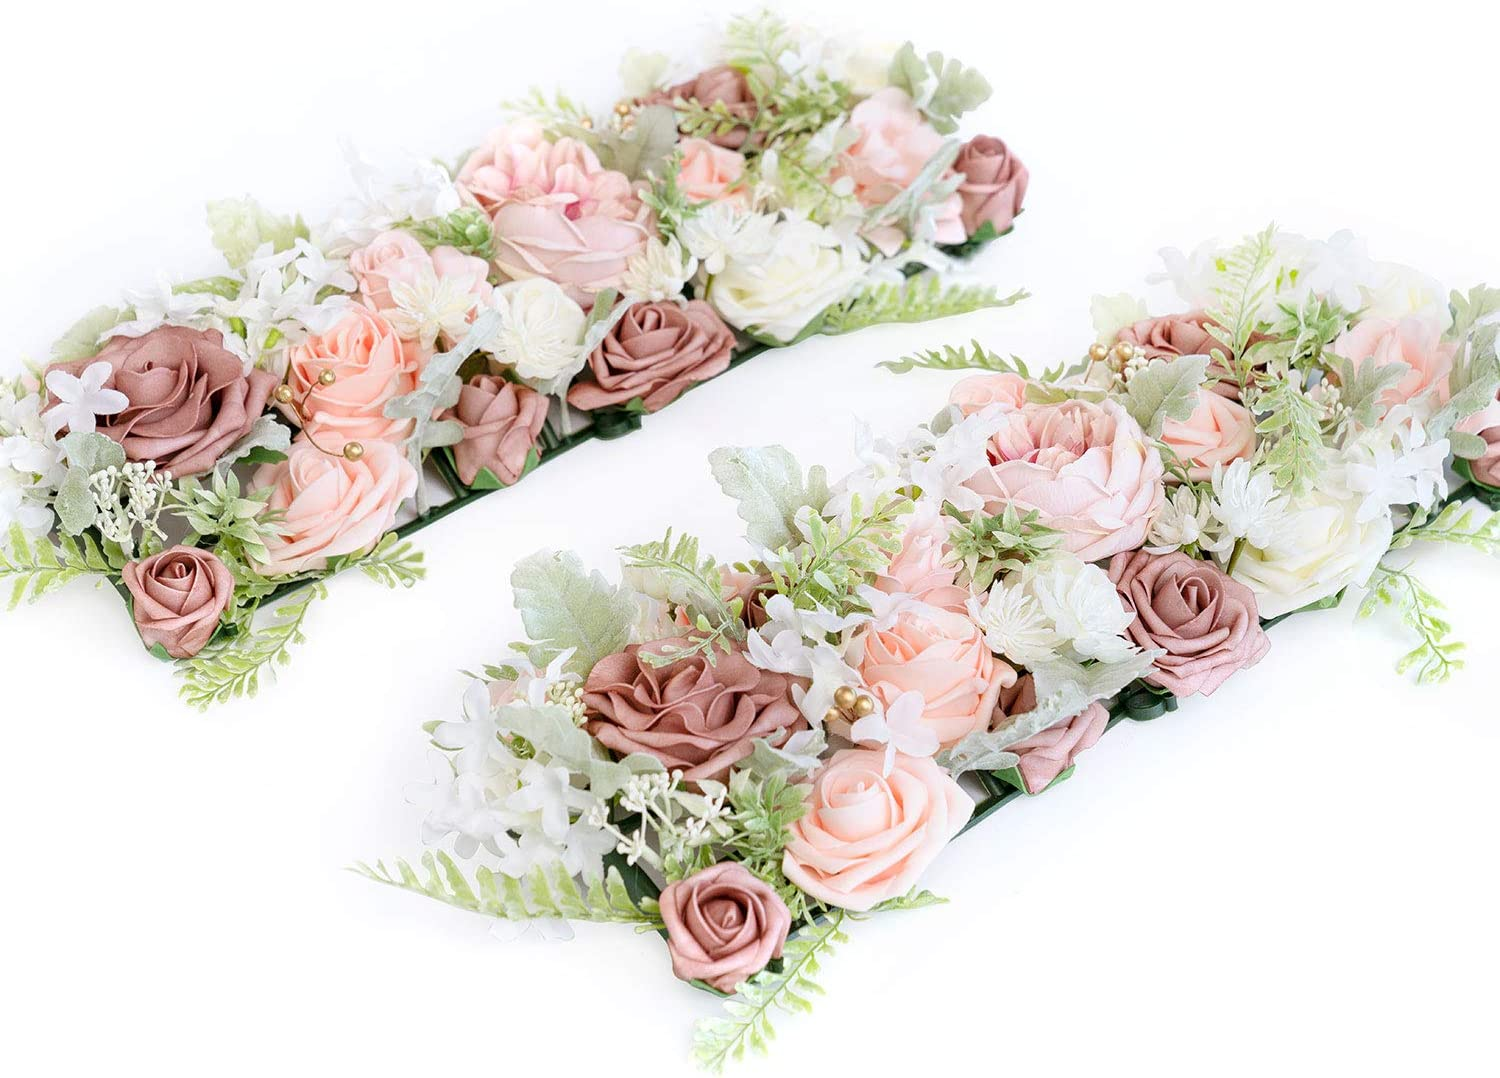 Ling's moment Ready to Use Wedding Table Centerpieces Dusty Rose Flower Arrangements 34.4'' in Total Set of 2 for 45'' Sweetheart/Head/Reception/Banquet-Style Table Setting Decorations